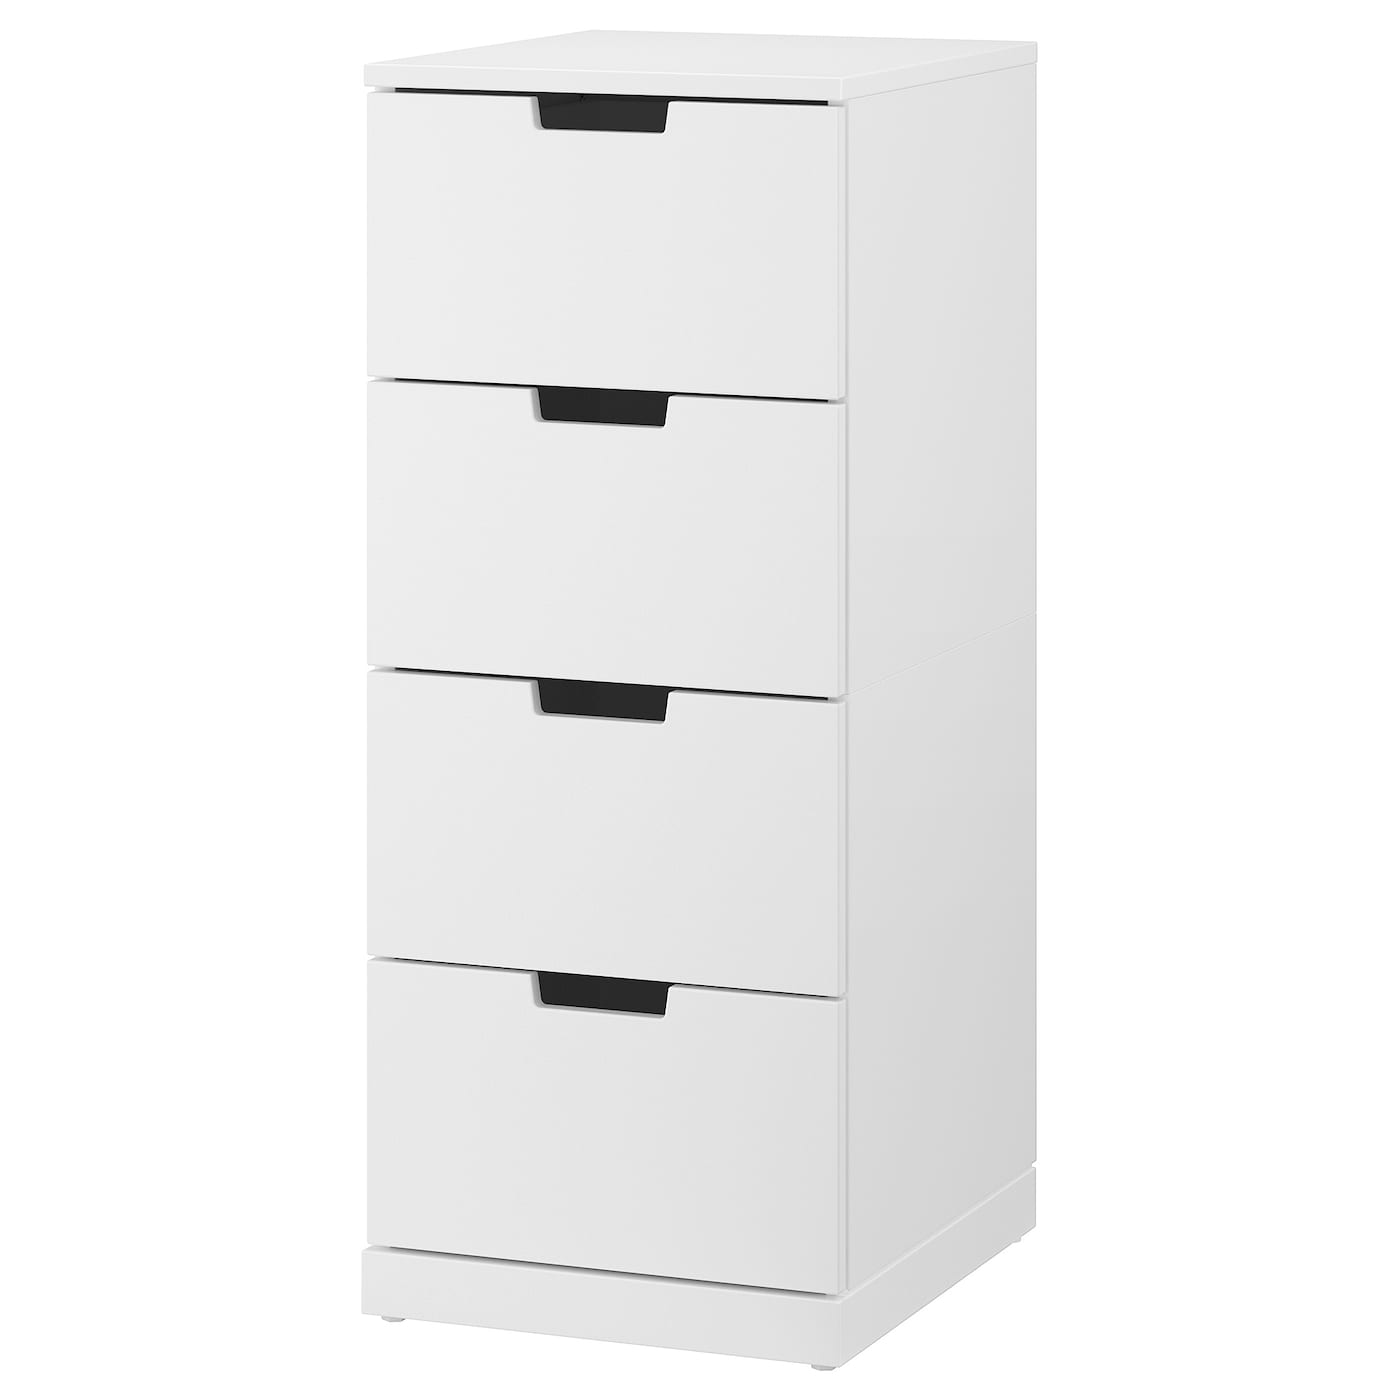 IKEA NORDLI chest of 4 drawers